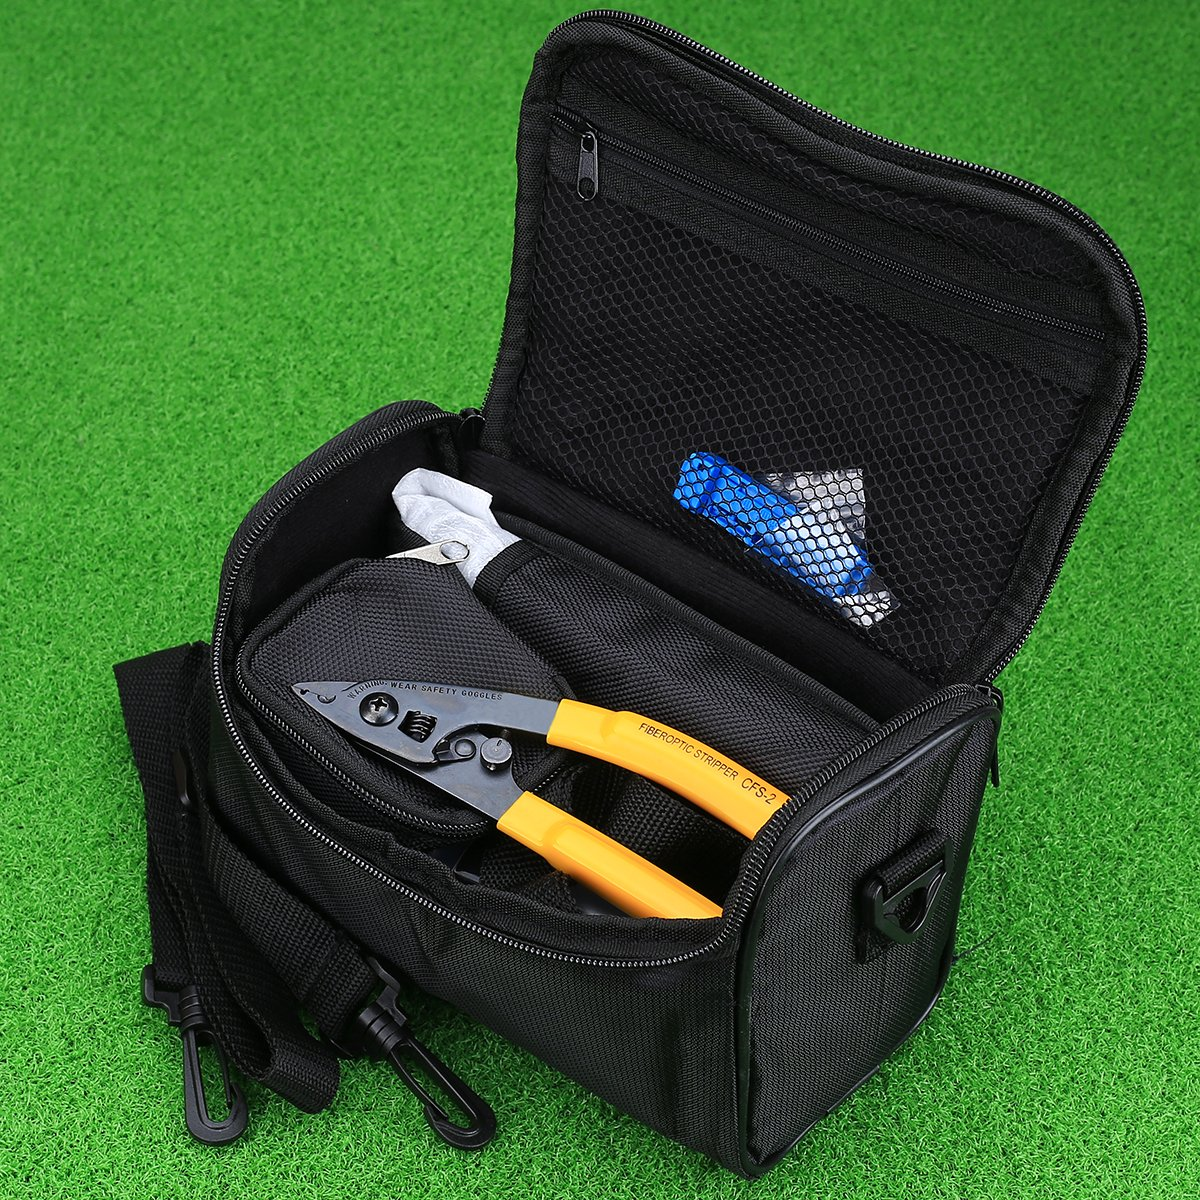 FTTH Fiber Optic Tool Kit with Fiber Fibra Optica Power Meter and Visual Fault Locator and Cable Cutter Stripper FC-6S Fiber Cleaver by Cruiser (Image #2)